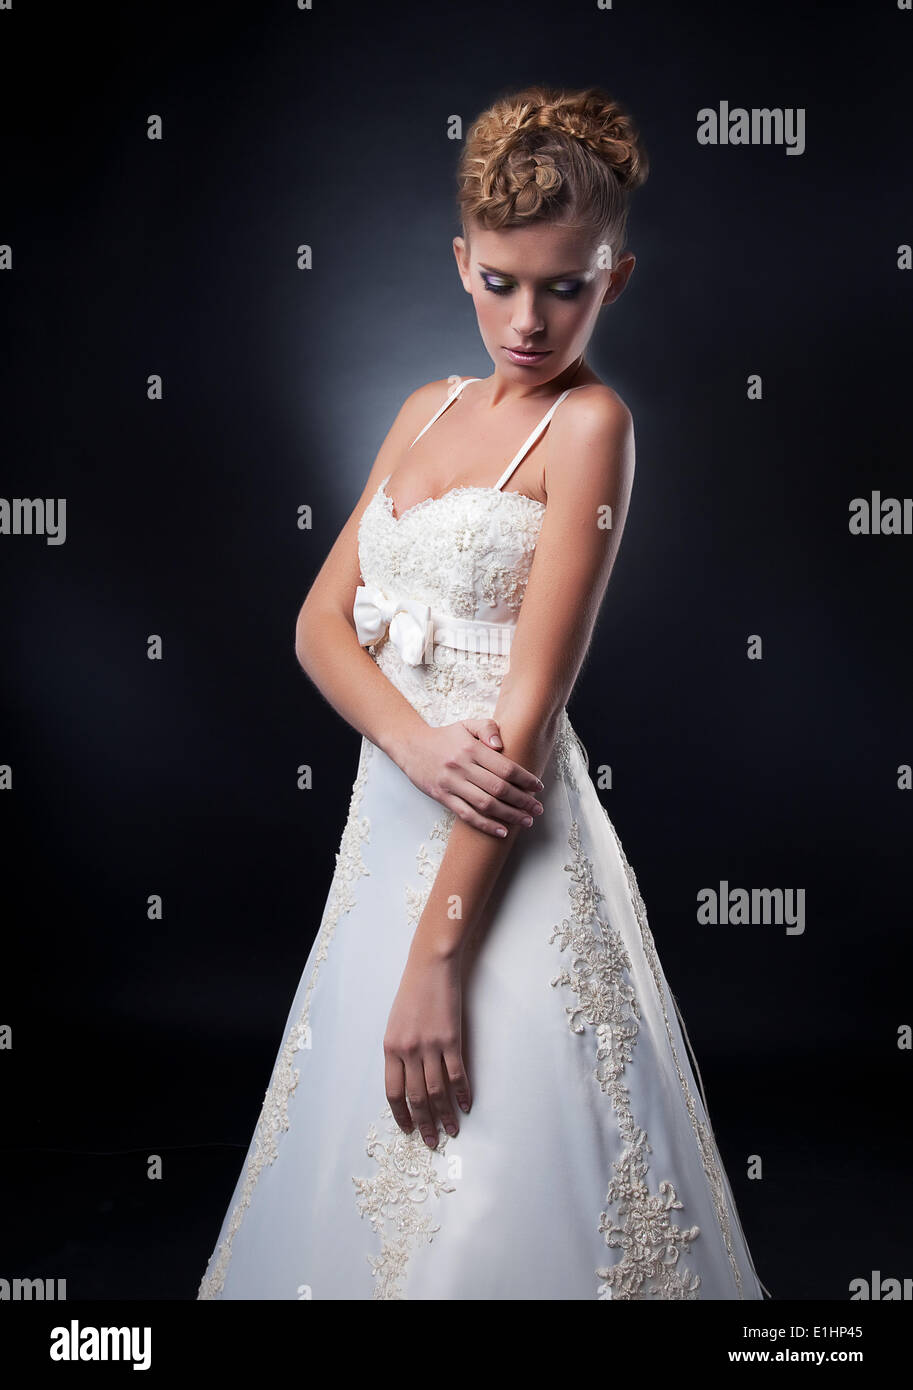 Wedding style - pretty fashionable young bride posing in white bridal dress, studio shot - Stock Image